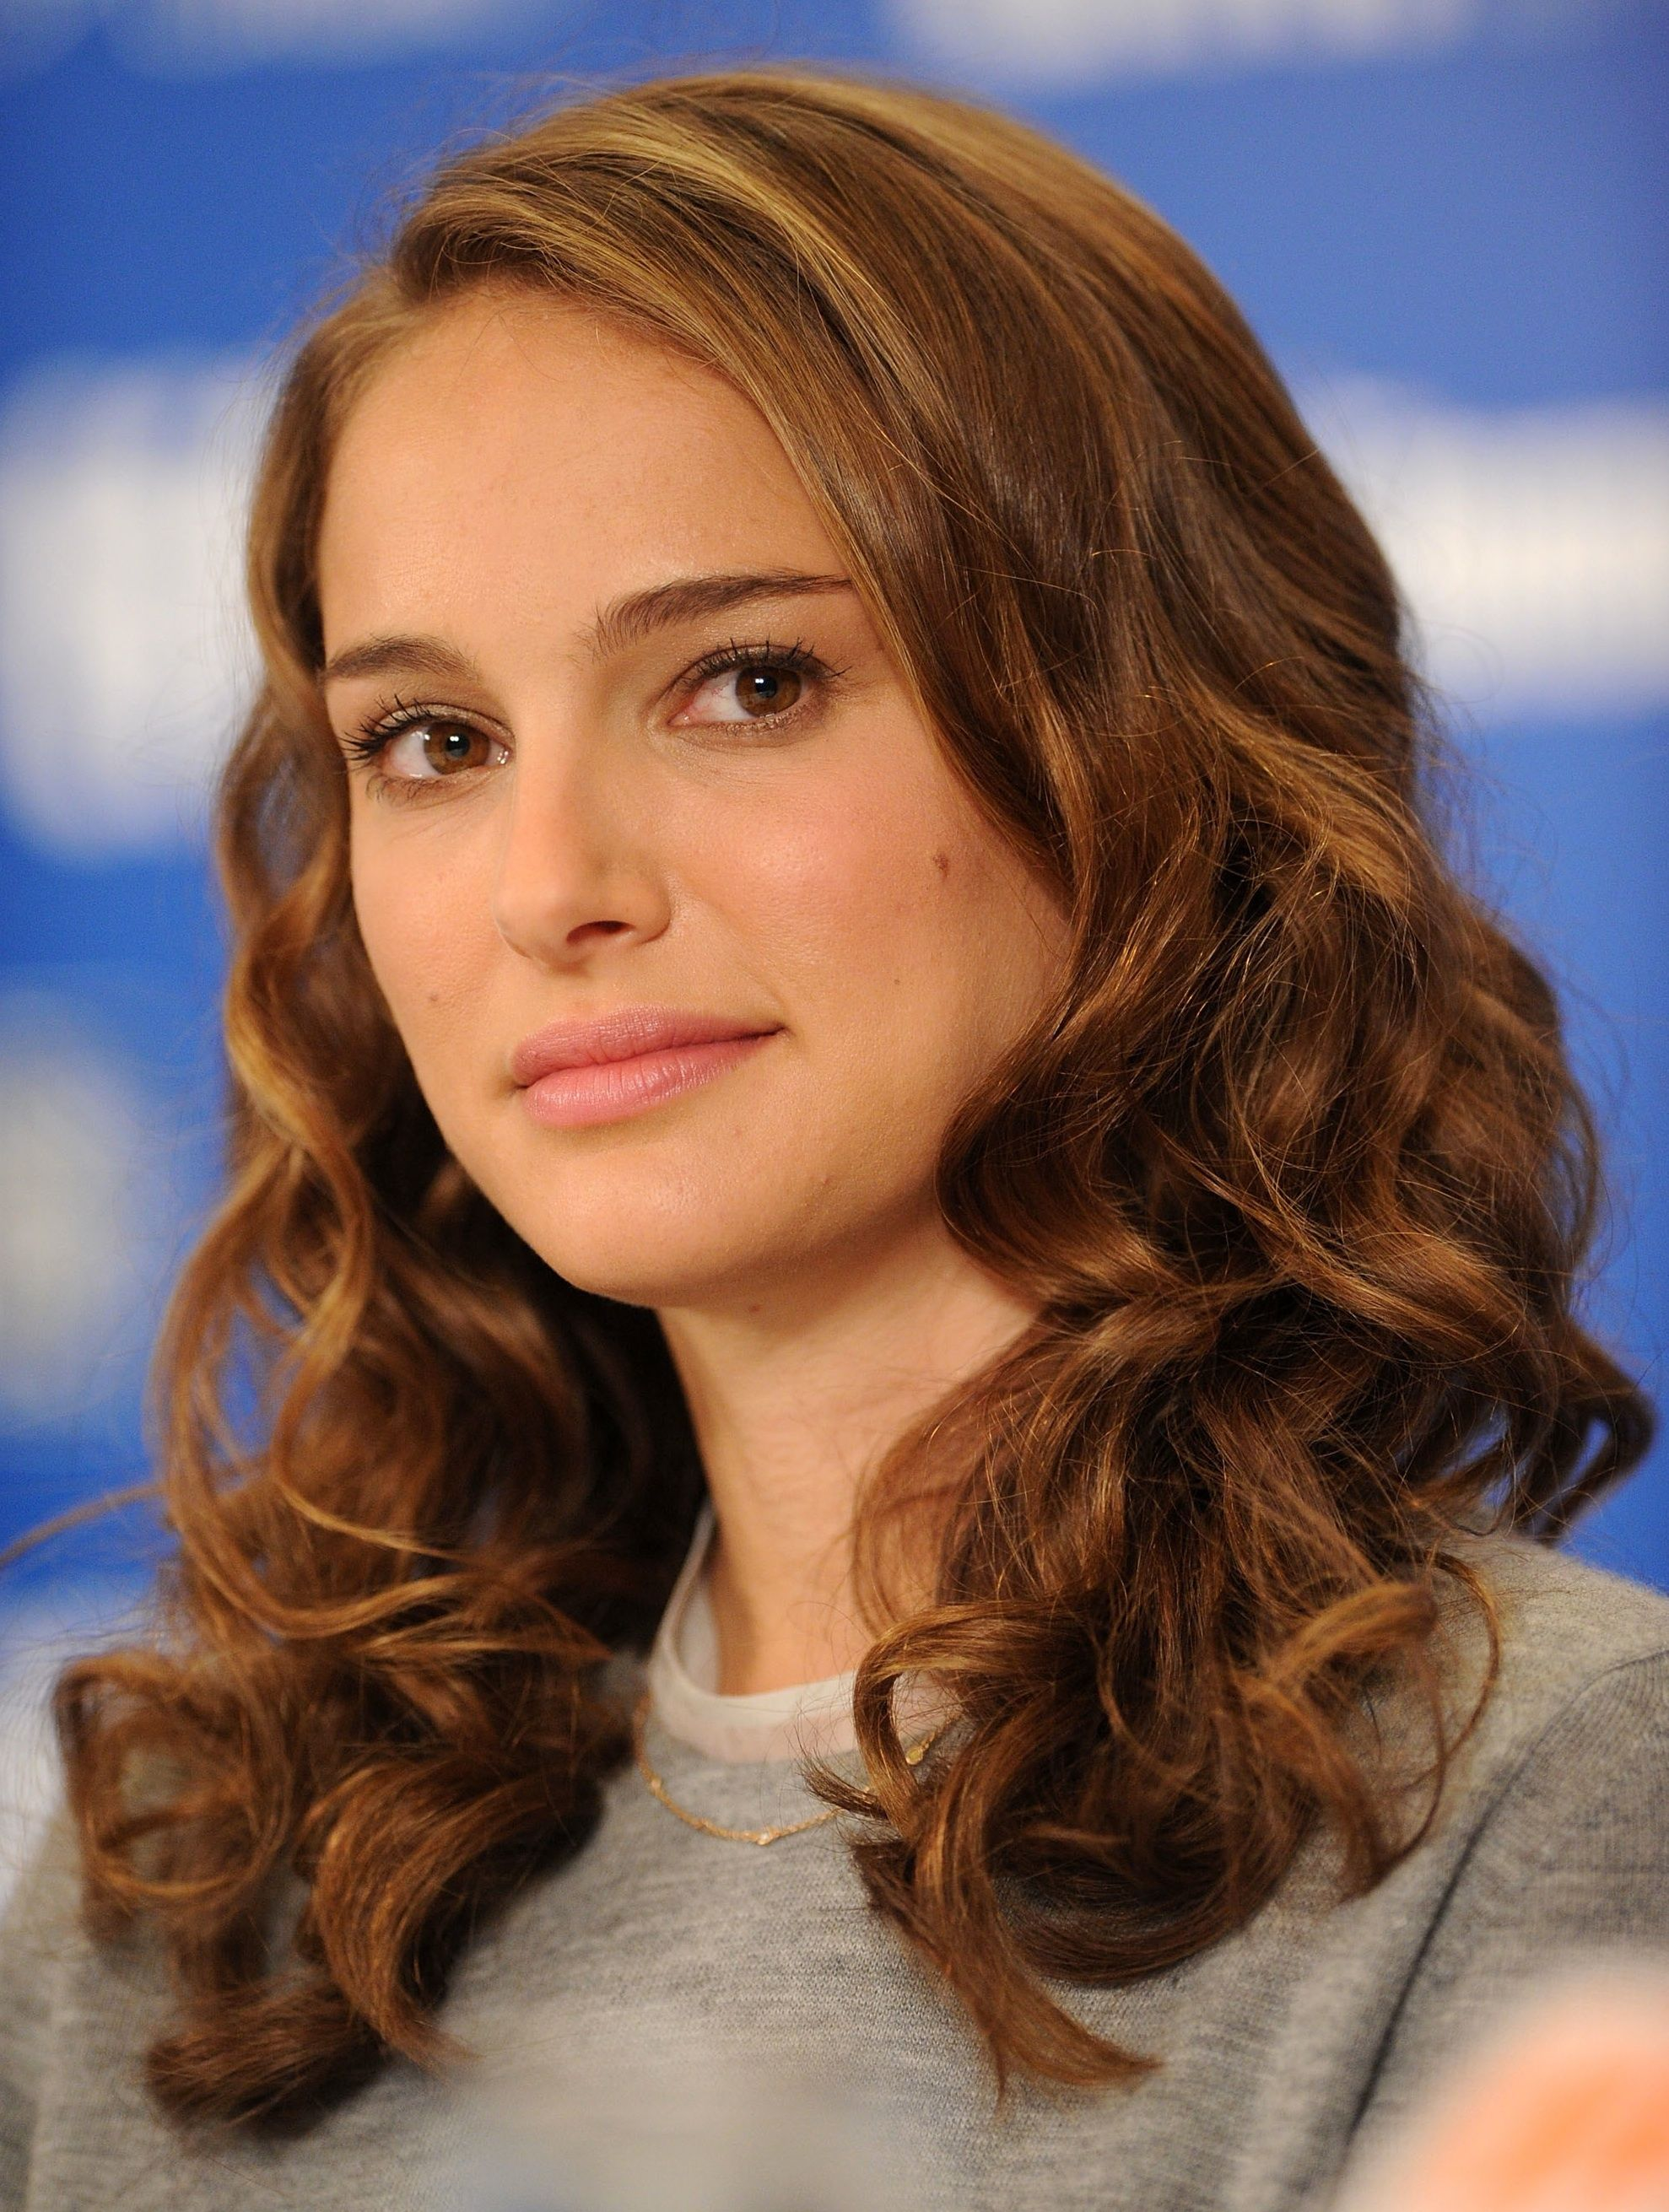 Natalie Portman Played Padme in the Star Wars prequels and the